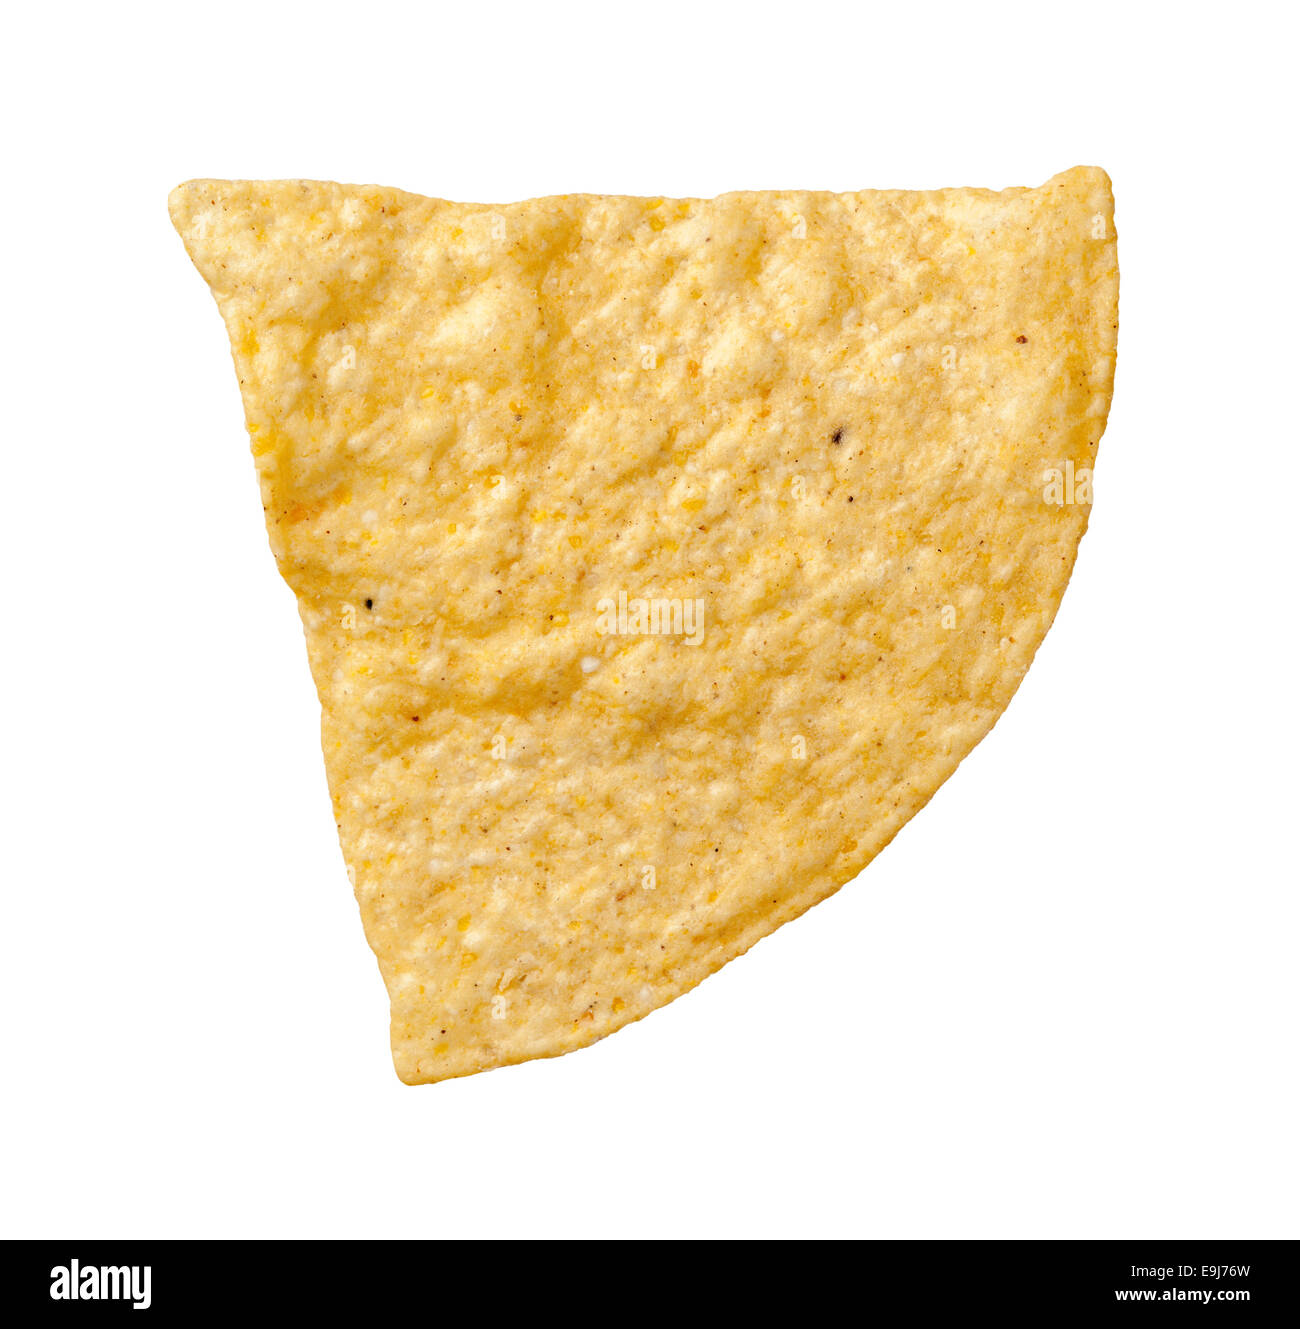 A single tortilla chip isolated on a white background. Tortillas are a salty snack associated with parties. - Stock Image